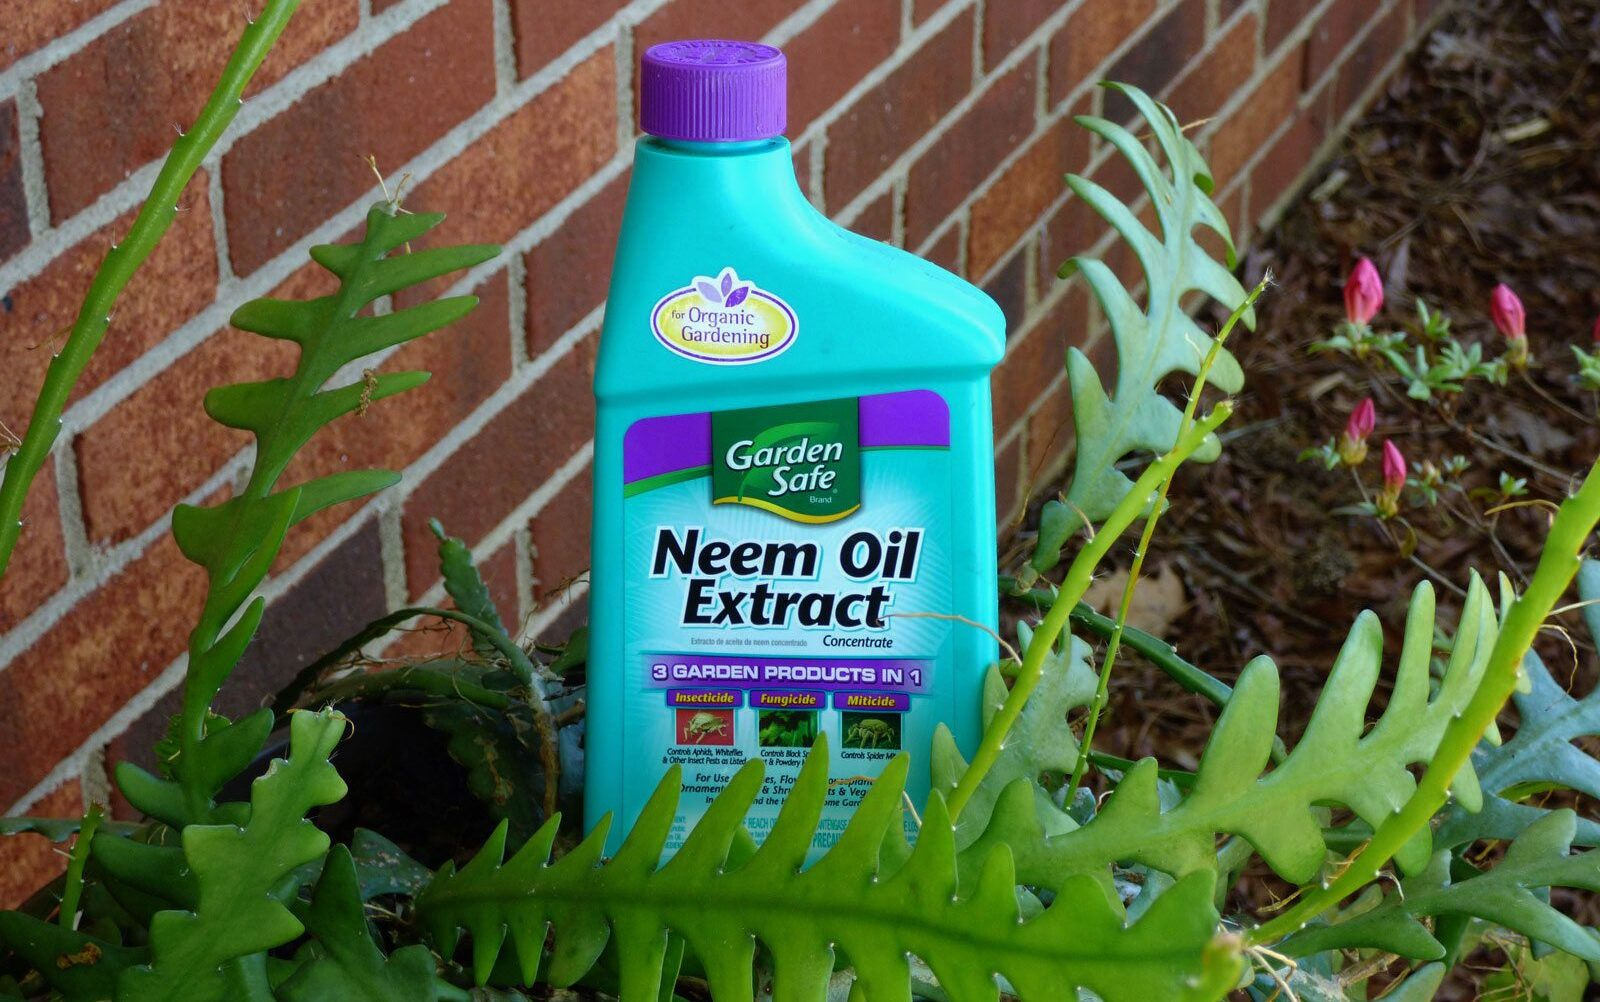 NEEM OIL TIMES OF AGRICULTURE